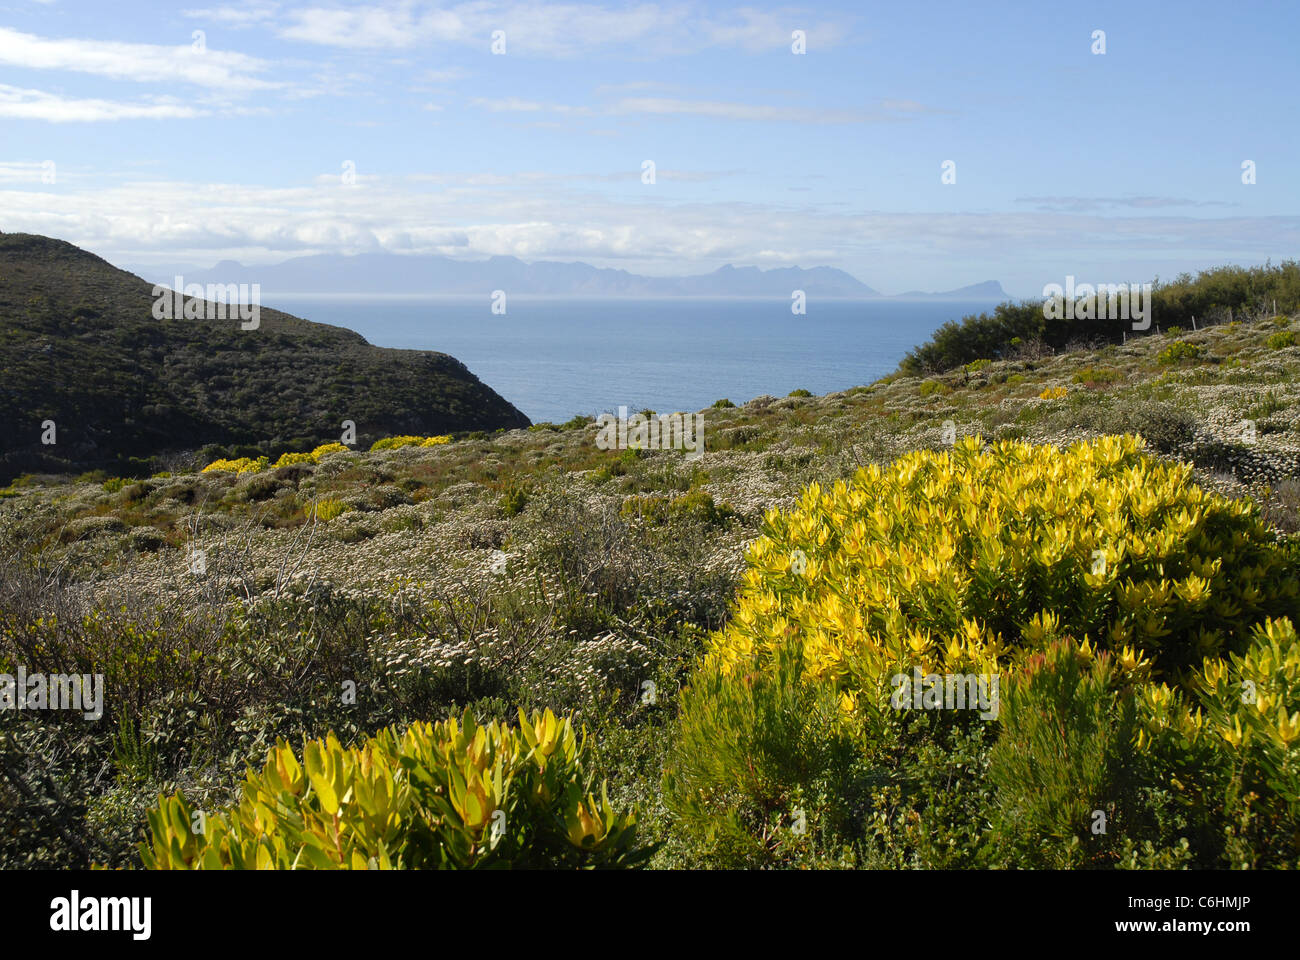 landscape and coastal vegetation, Cape Point, Cape of Good Hope, Table Mountain National Park, Western Cape, South - Stock Image